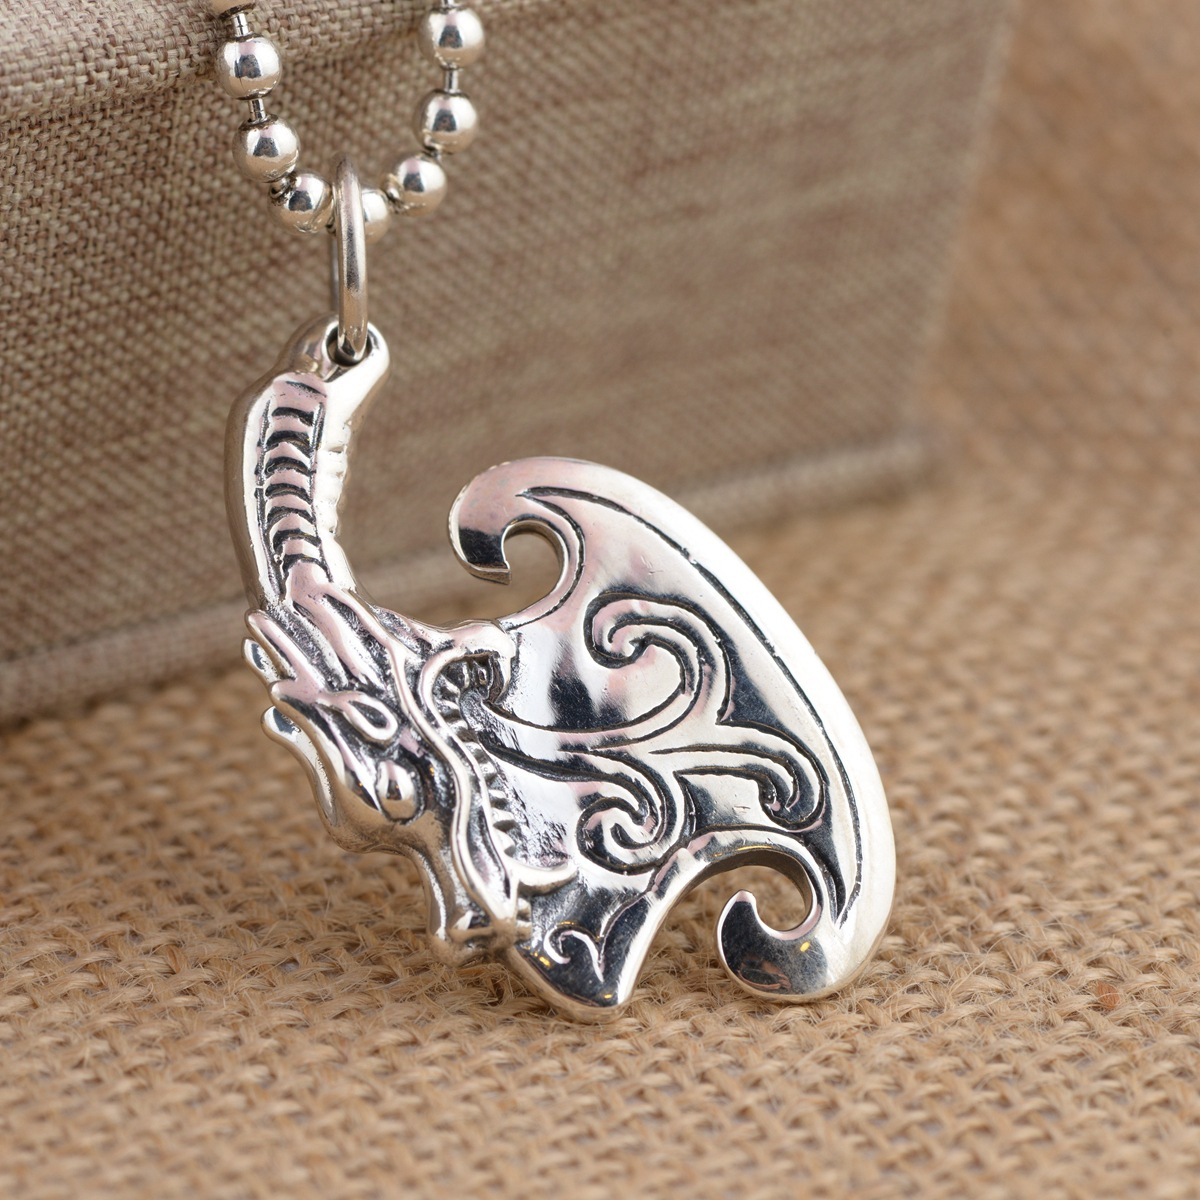 Thai silver pendant S925 Sterling Silver Wholesale Mens antique other evil new pattern Yazi axe gift equte psiw3coot1 s925 sterling silver necklace cat s eye axe pendant chain white silver 16